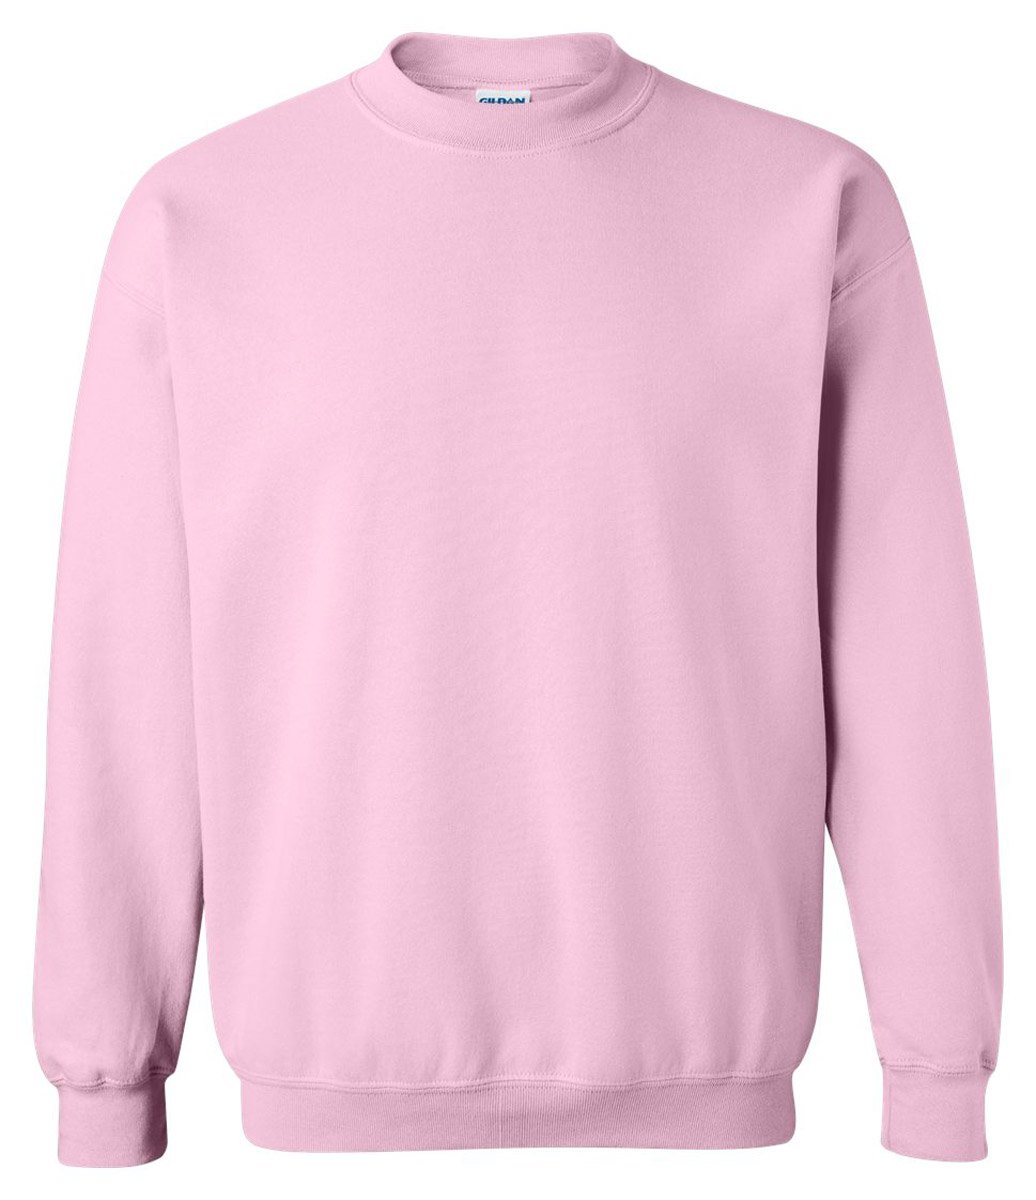 Gildan Heavy Blend Unisex Adult Crewneck Sweatshirt (M) (Light Pink)